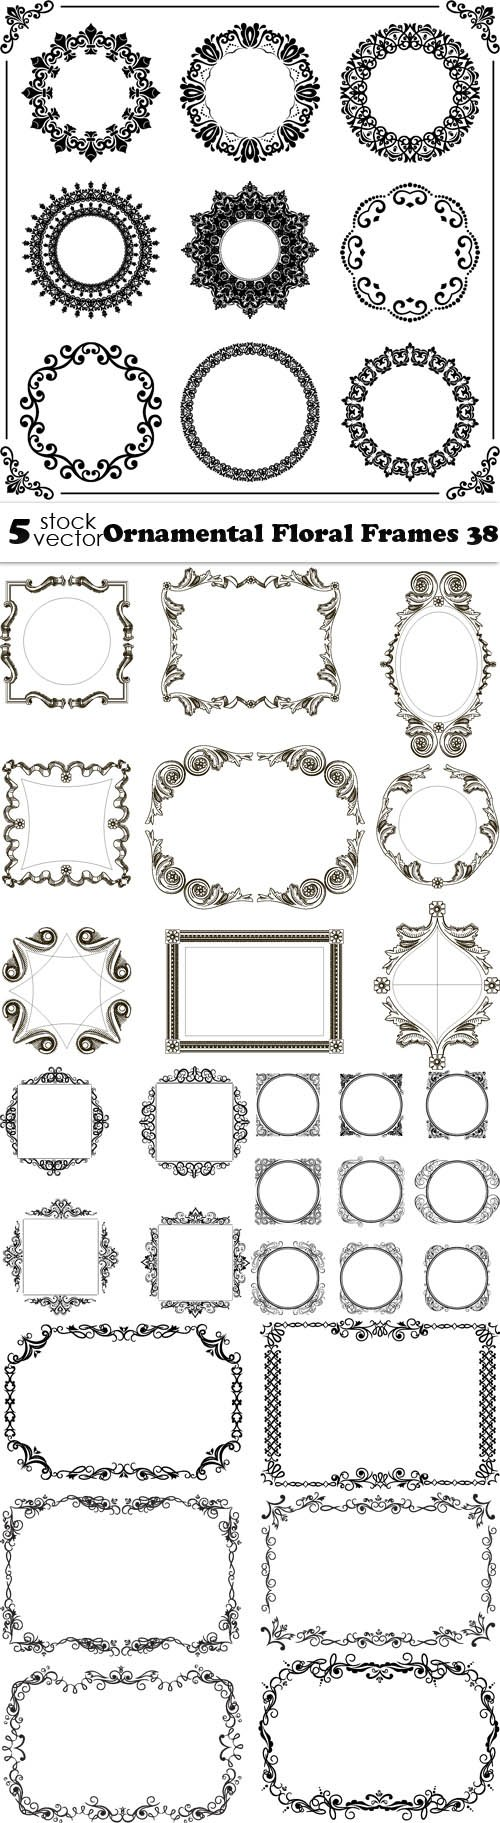 Vectors - Ornamental Floral Frames 38